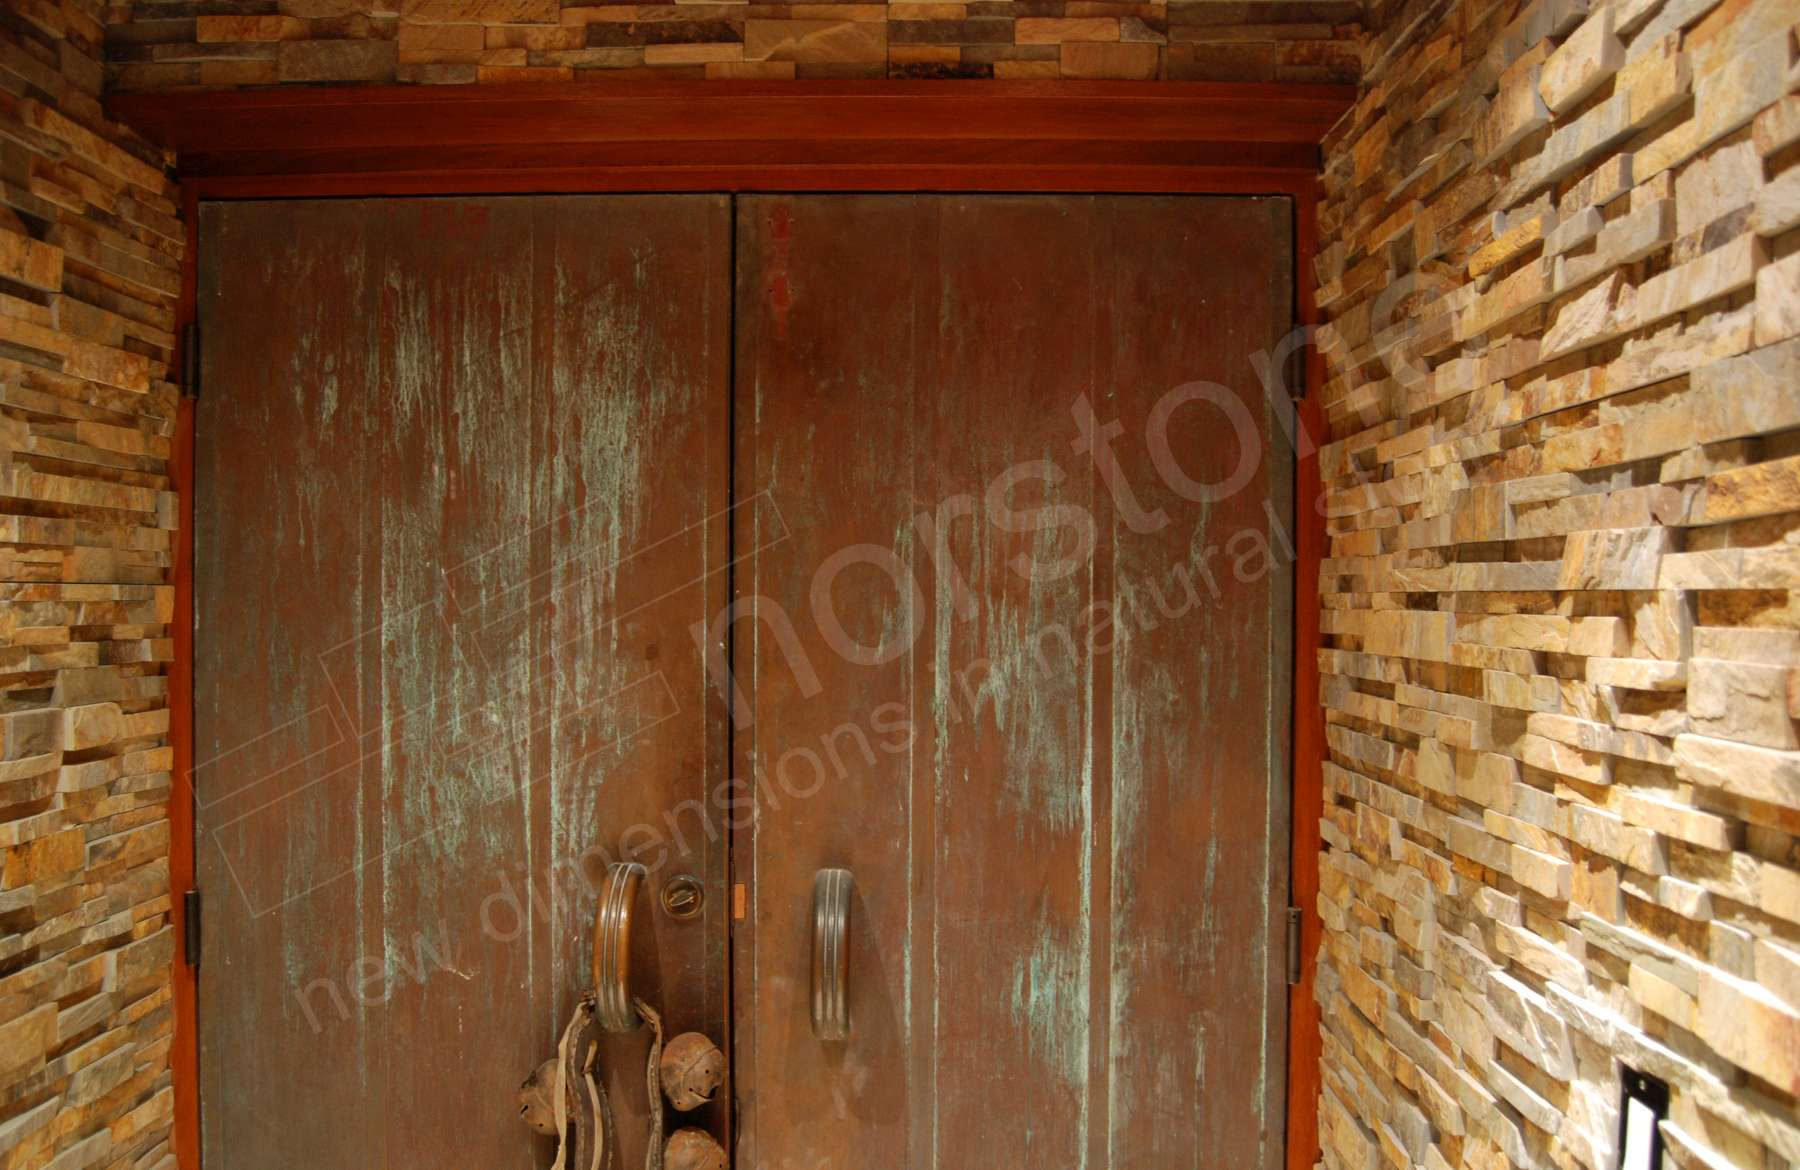 Norstone Ochre Stacked Stone Rock Panels on Entrway to underground Wine Cellar in California with metal rusted doors